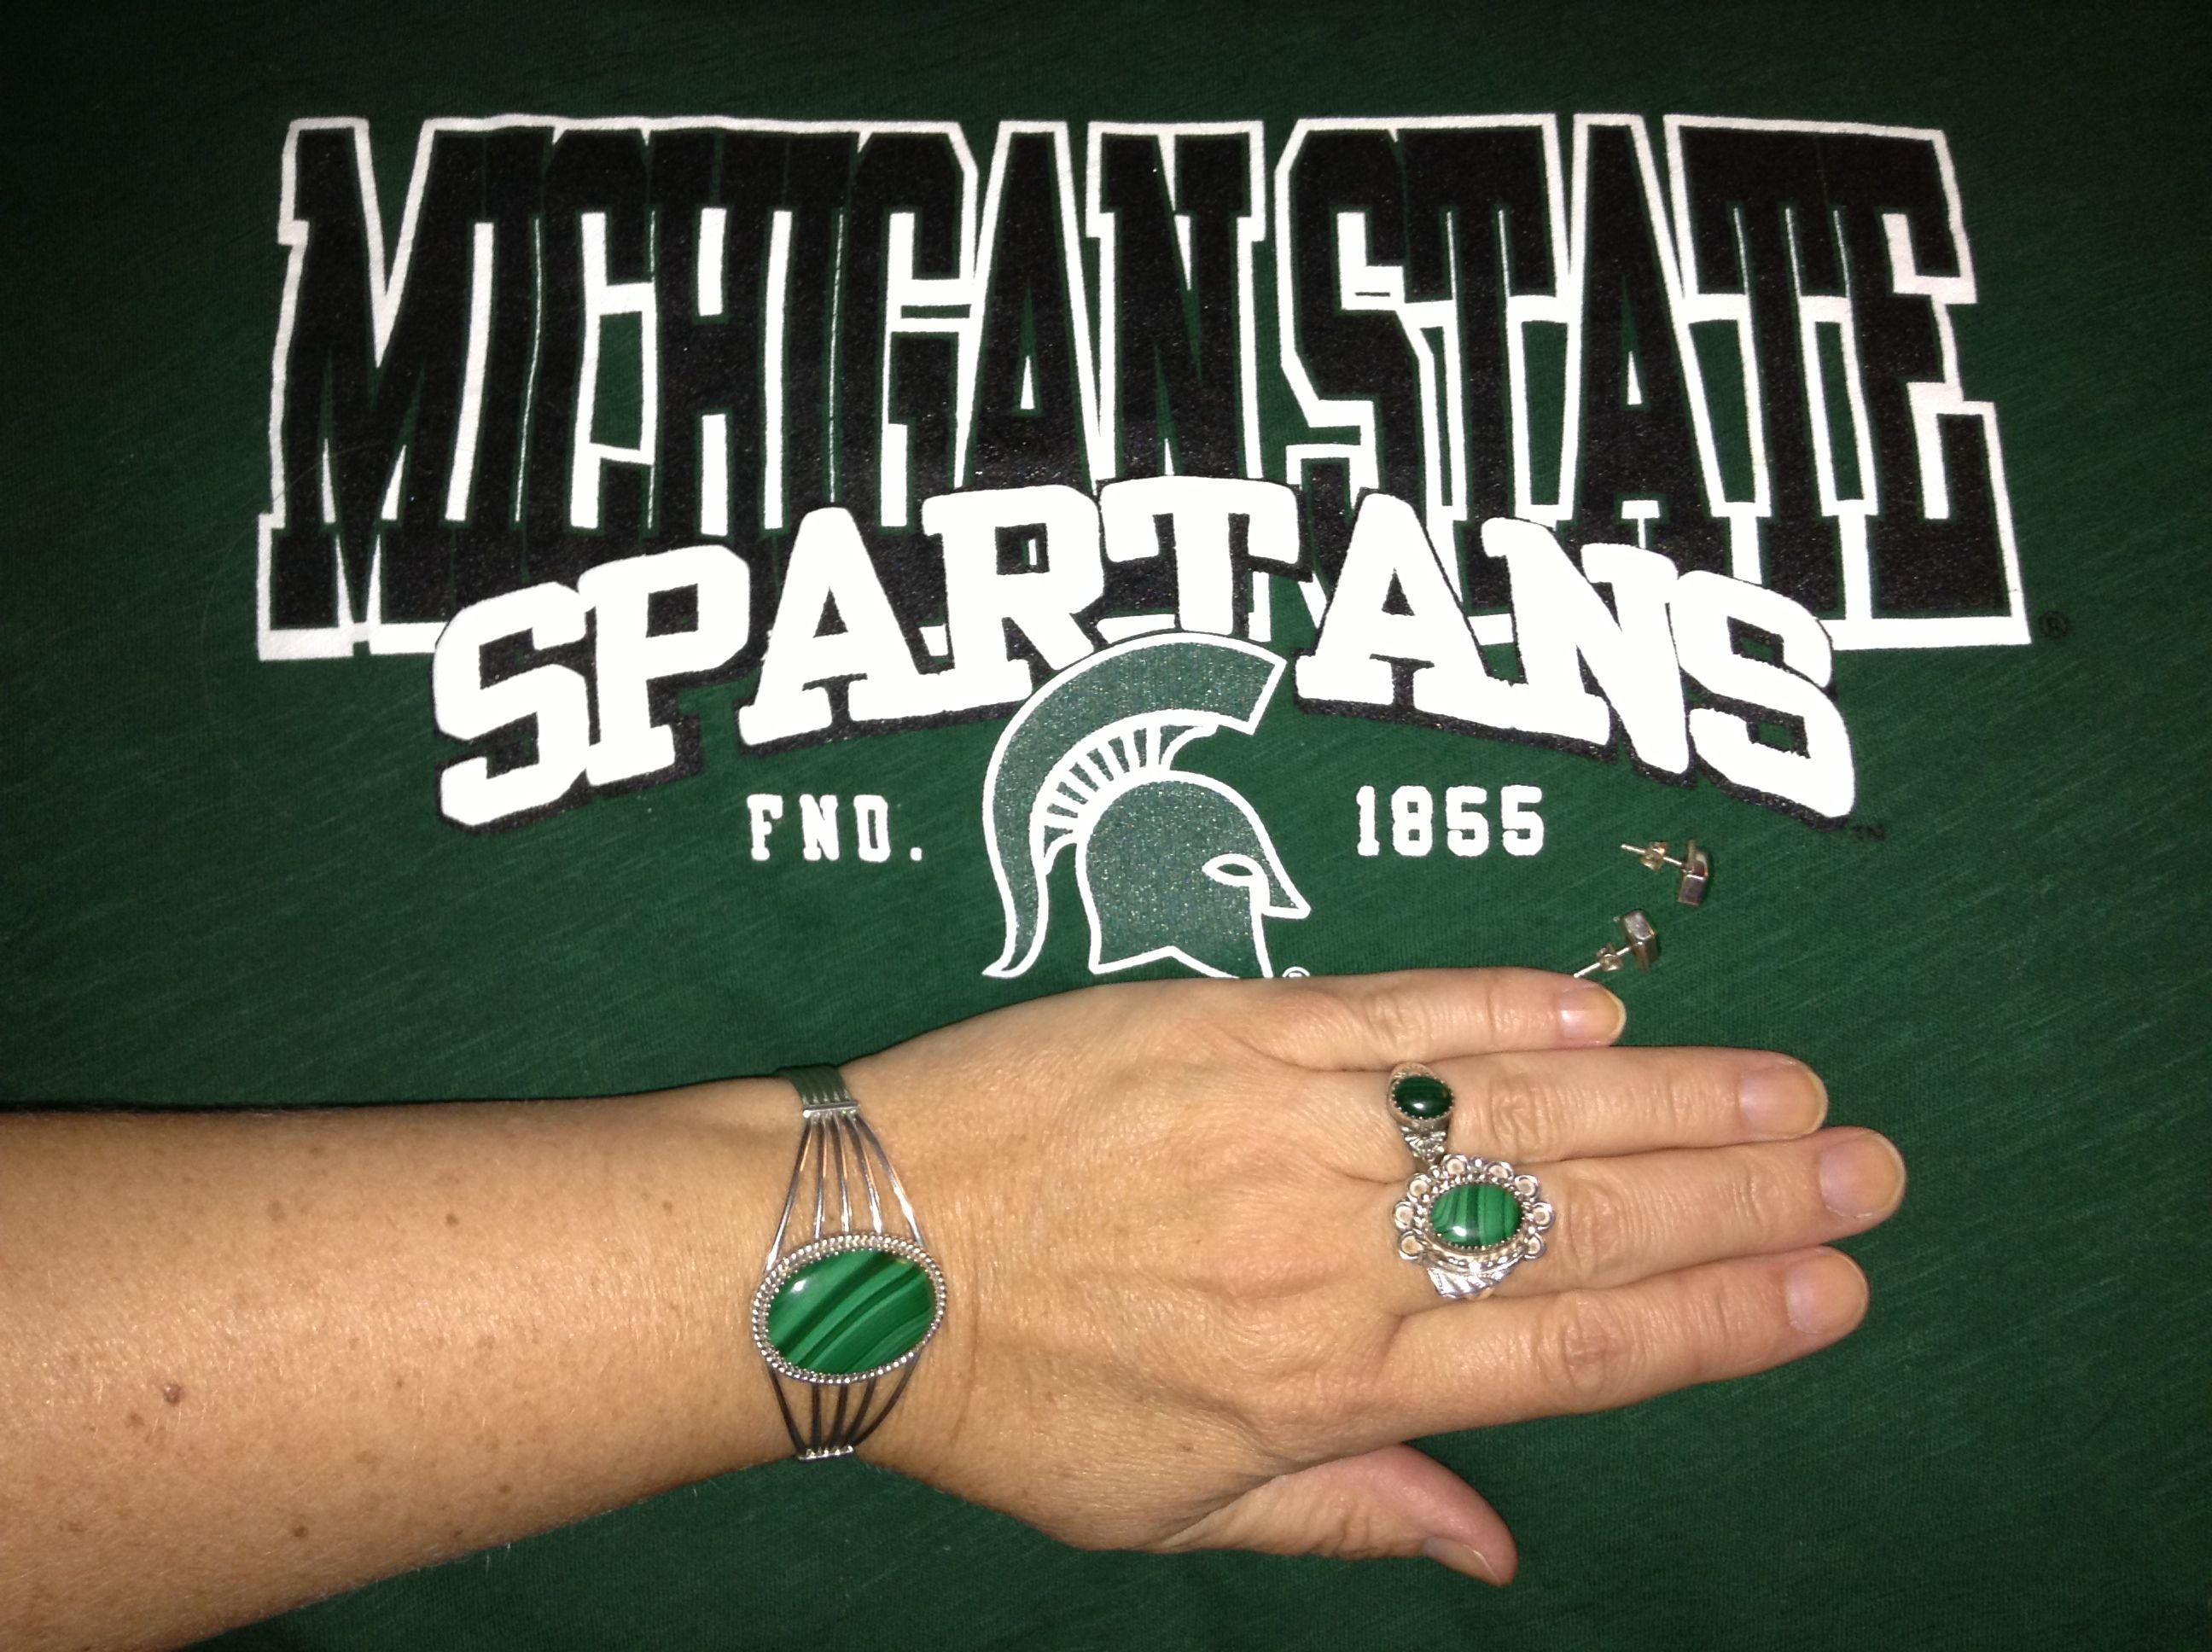 on crew state stadium best college turf spartan rings touches field sports puts michigan finishing s story football msu nation